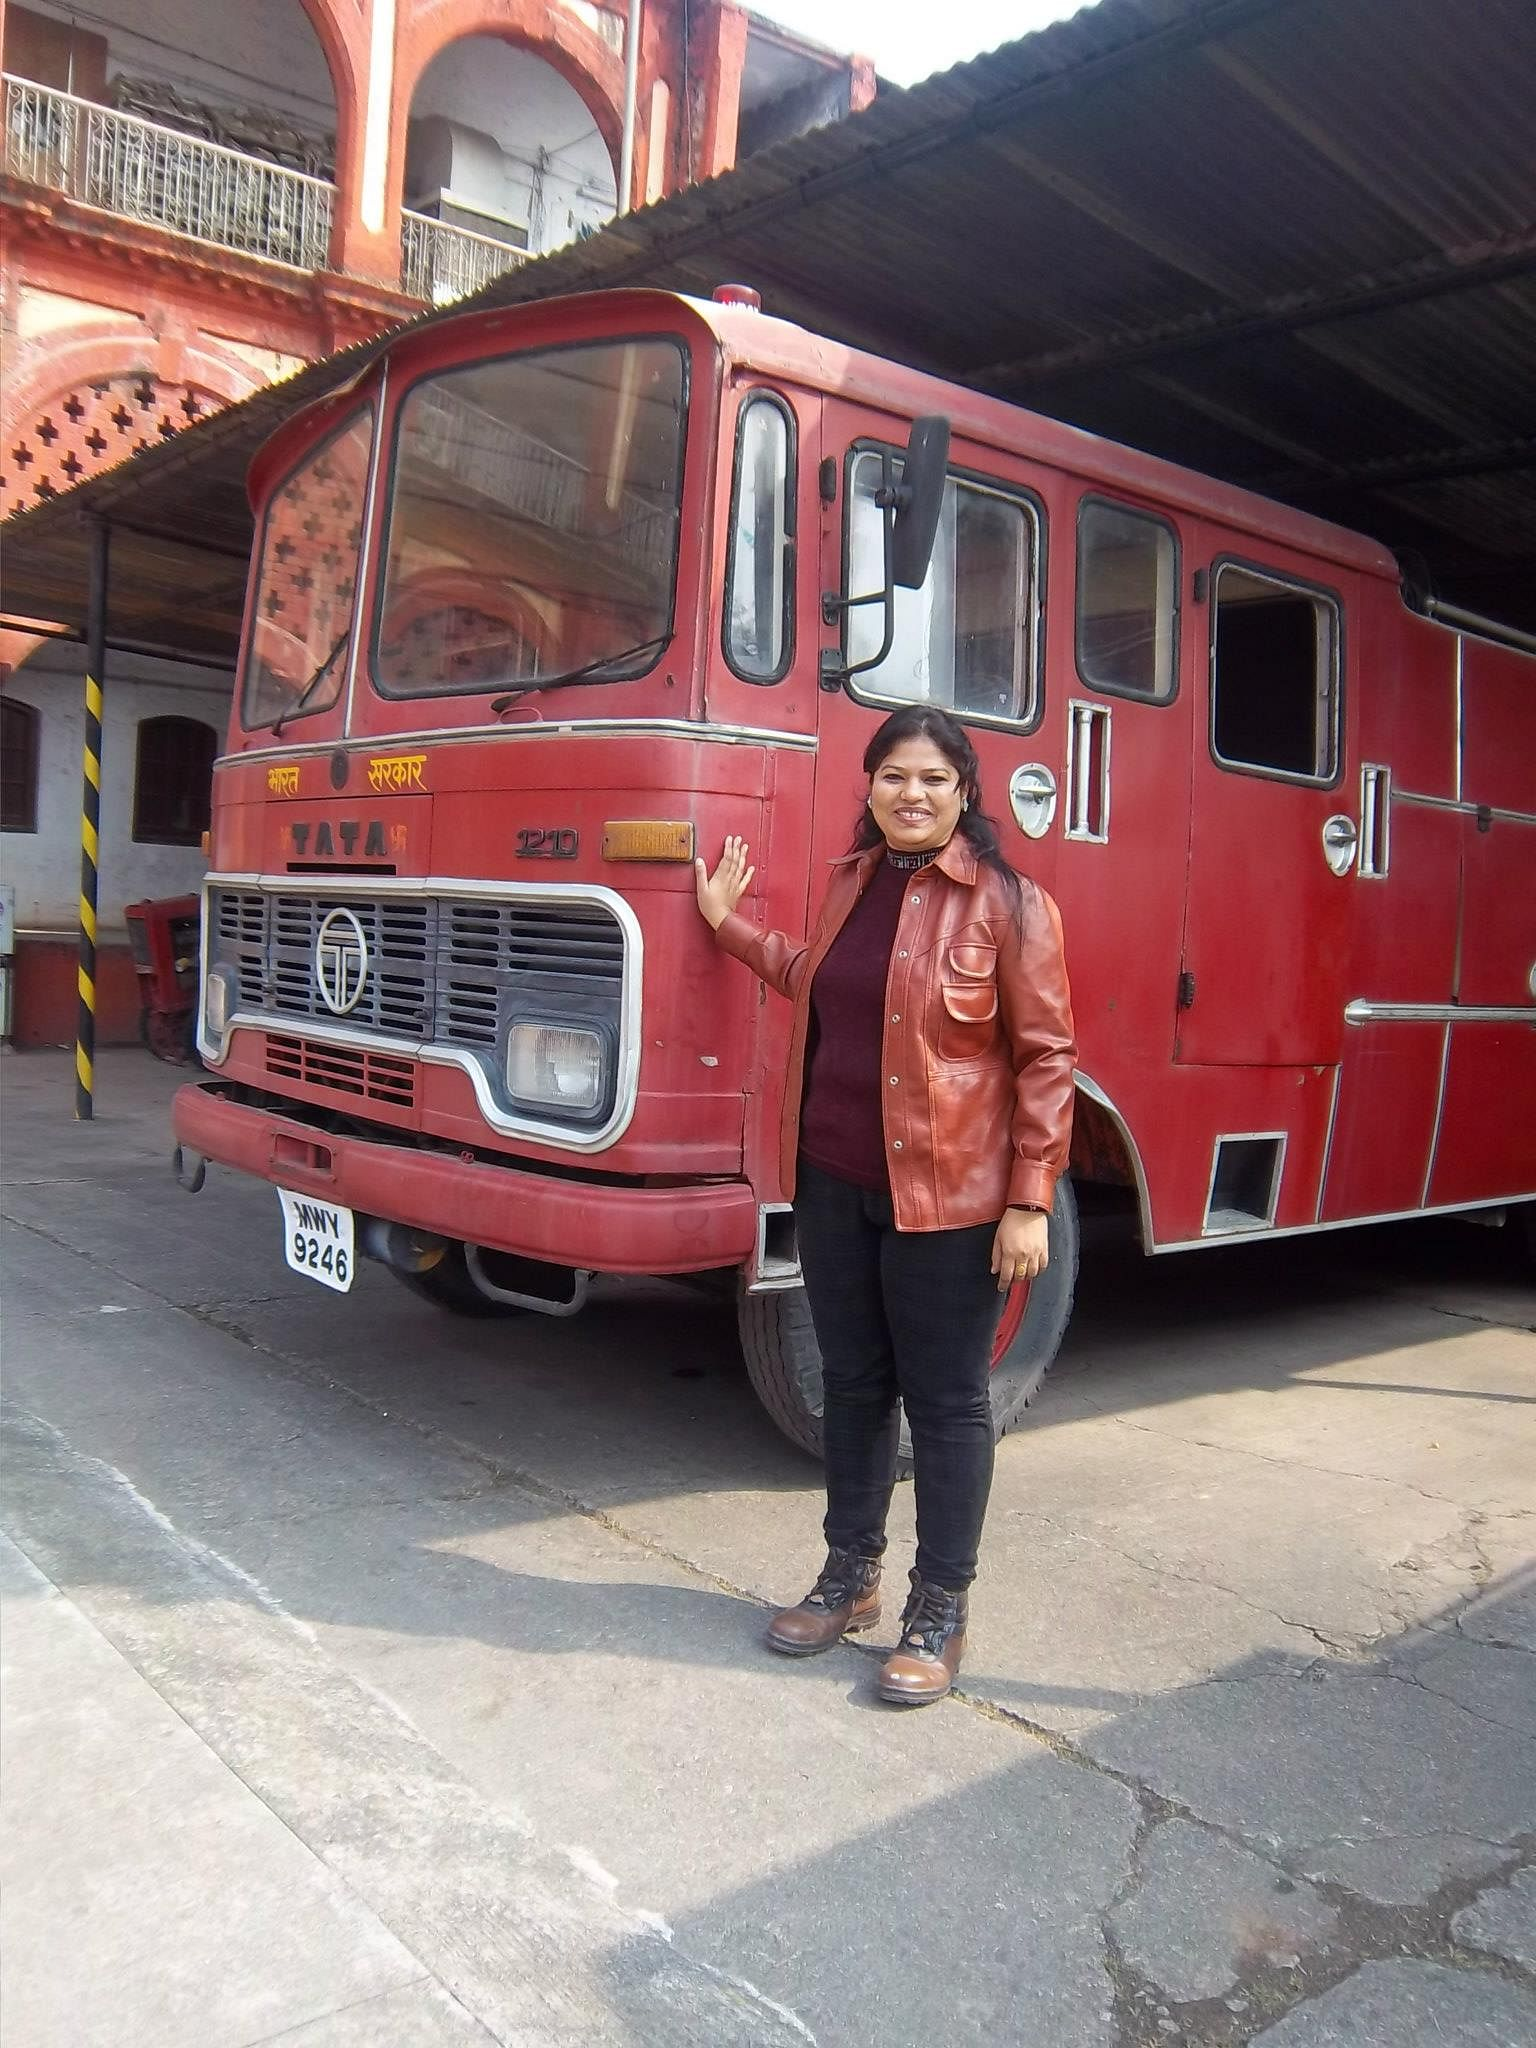 India's First Woman Firefighter - Harshini Kanhekar